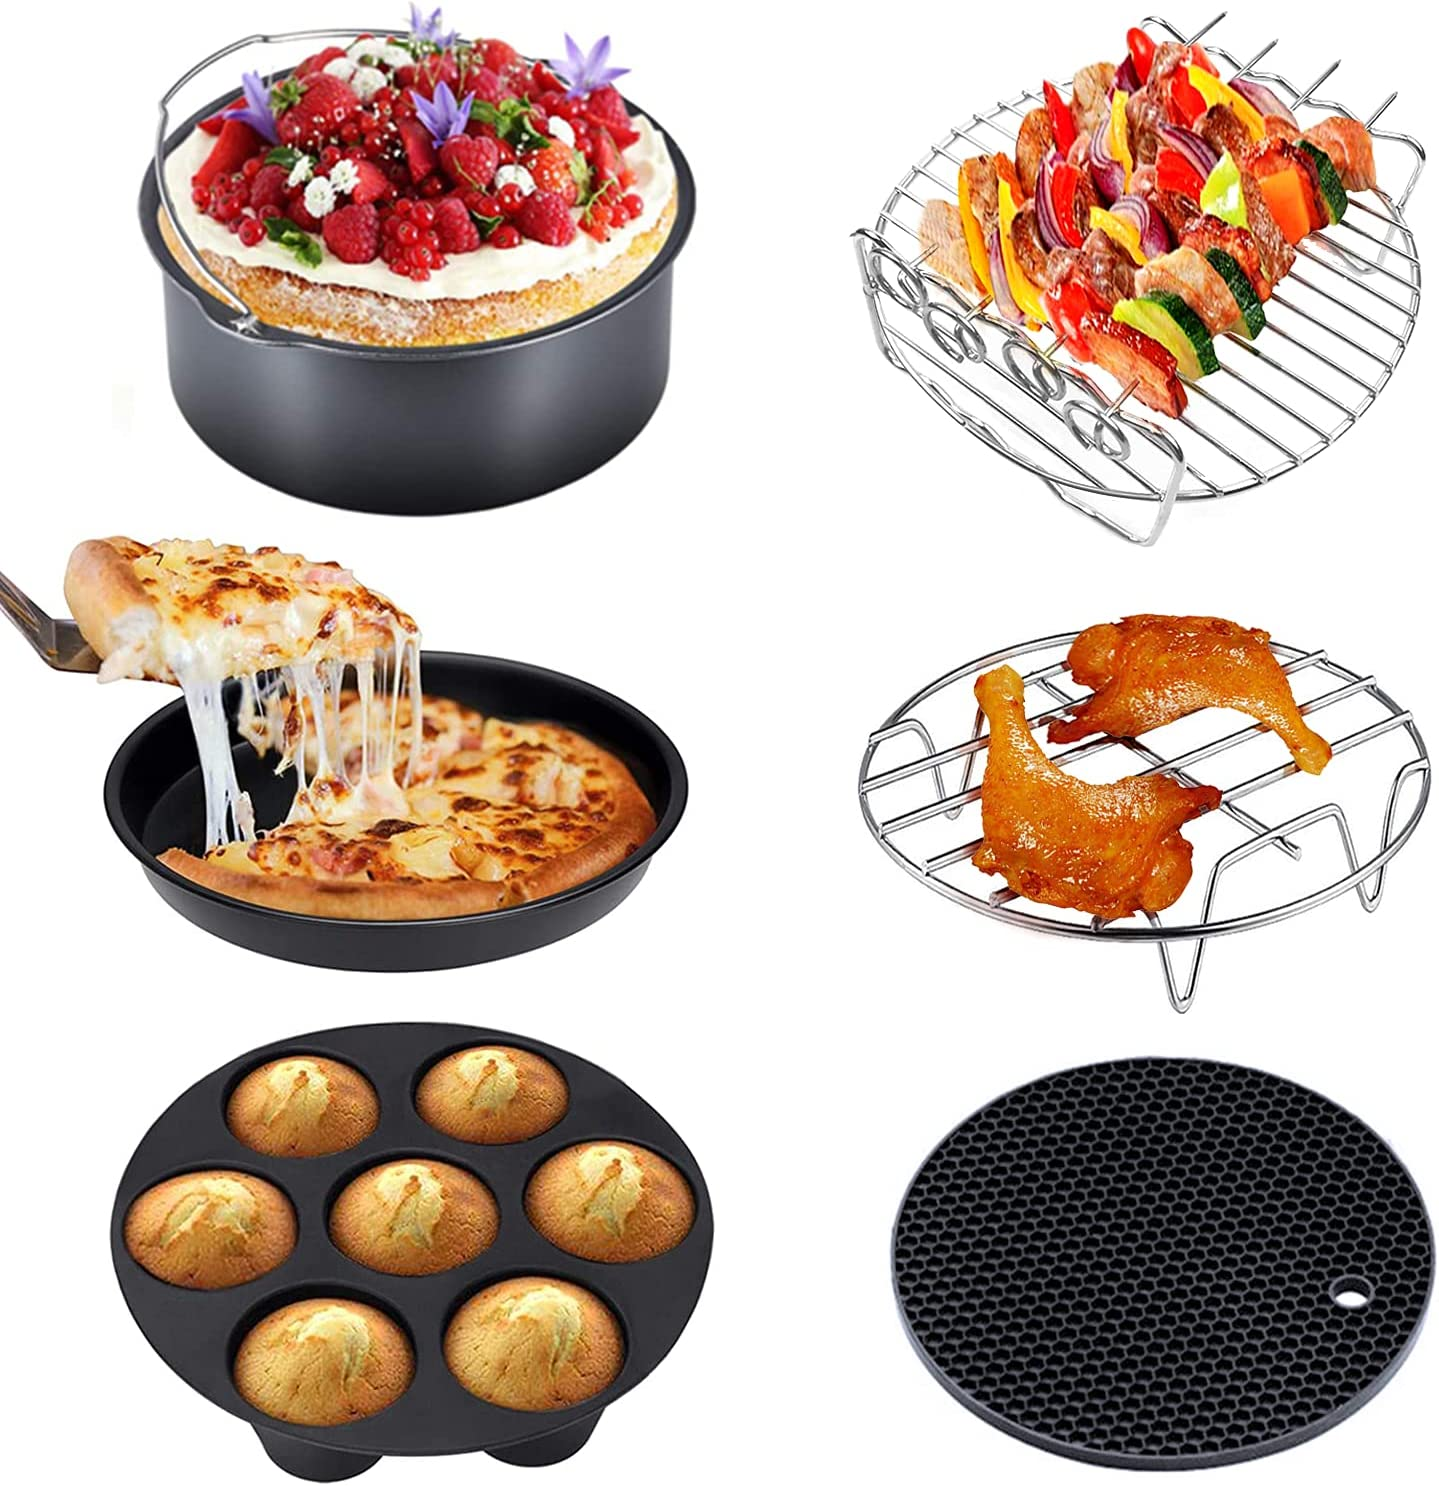 Air Fryer Accessories, OGREEM 8 inch Air Fryer Accessory, set of 6, Fit all 5.2QT-6.8QT Air Fryer, BPA Free, Non-stick, Easy to Clean, Dishwasher Safe.